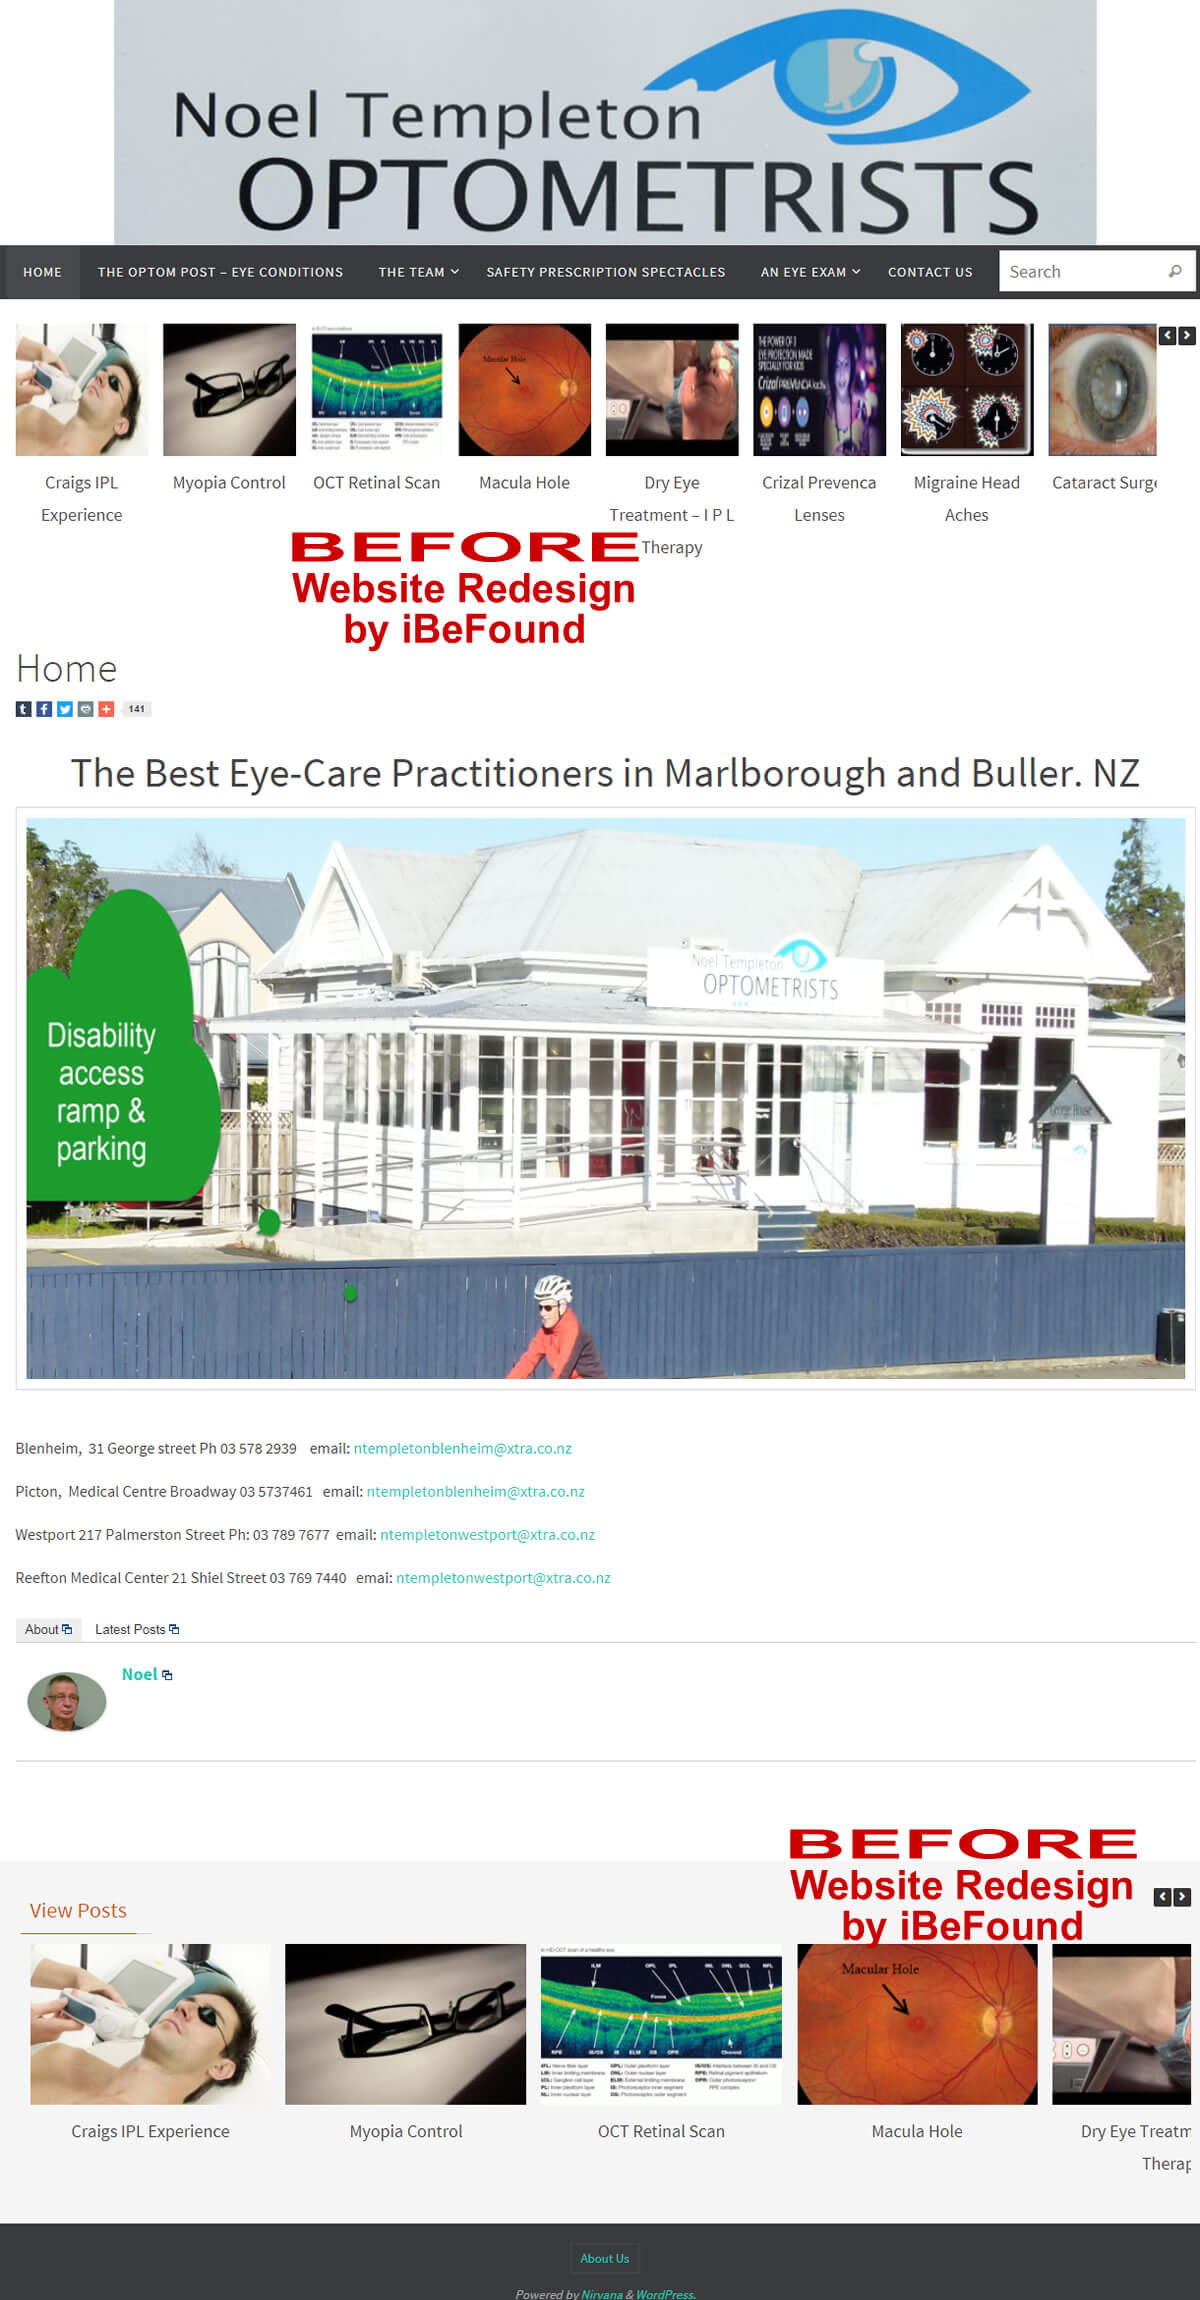 Homepage Of Noel Templeton Optometrists Before Website Redesign By IBeFound